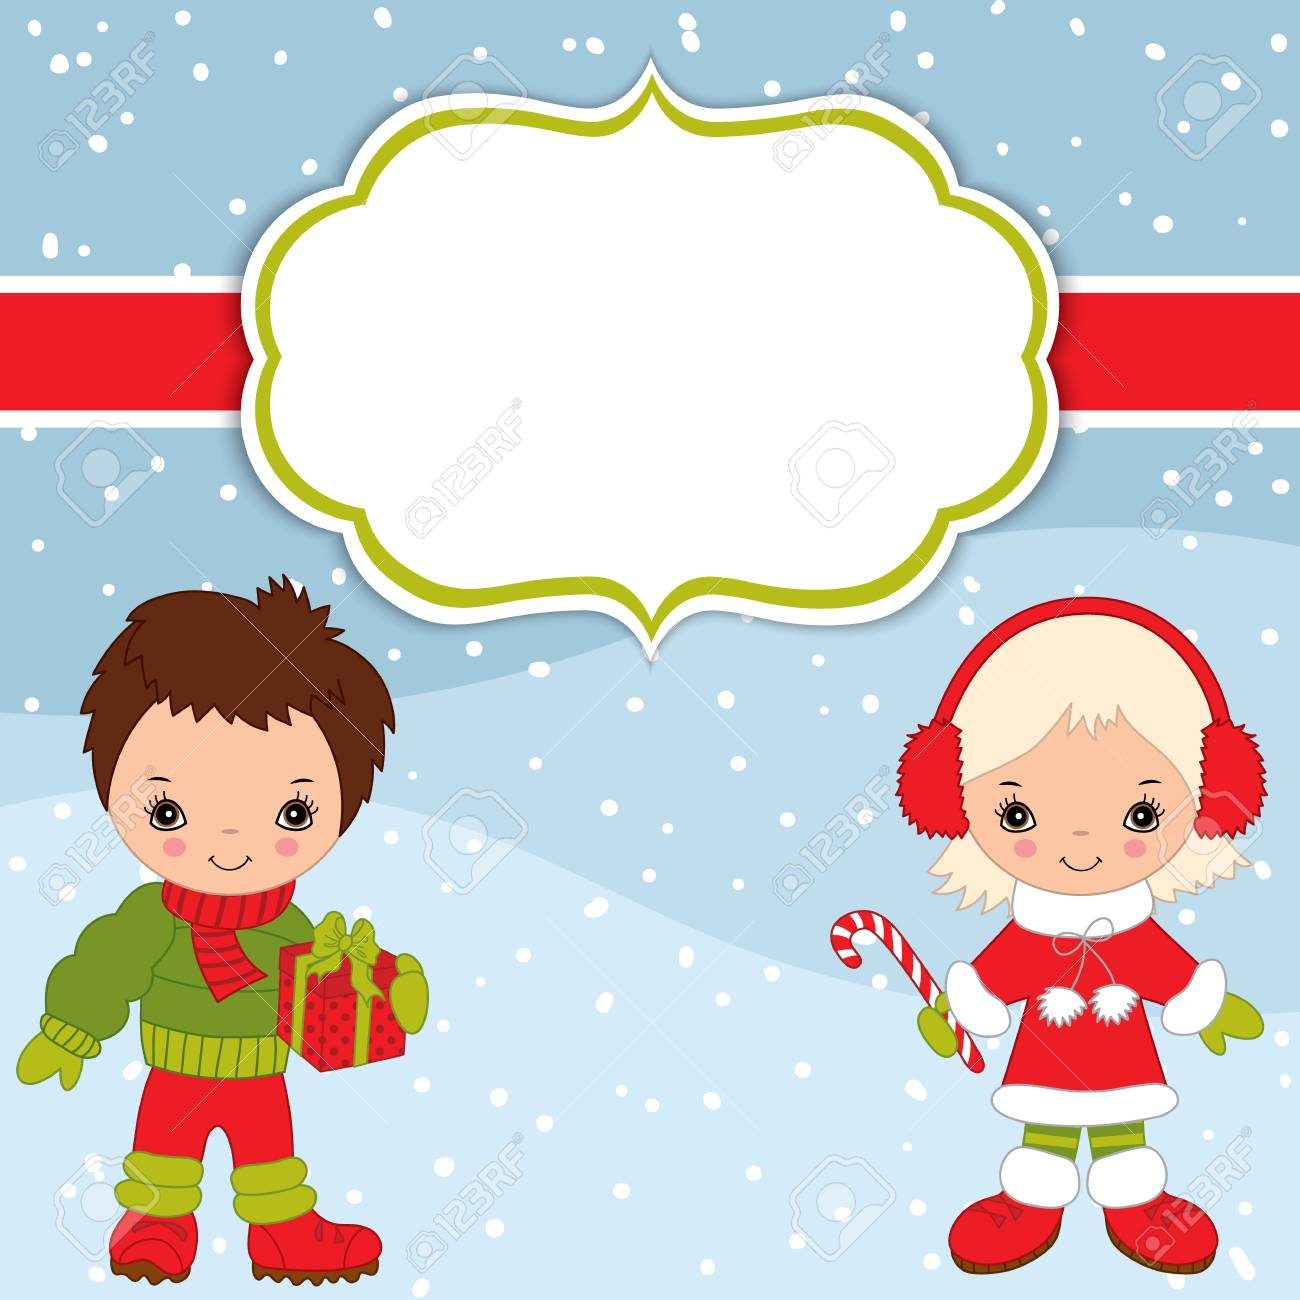 81004558 vector christmas and new year card template with cute little kids on snow background christmas and njpg